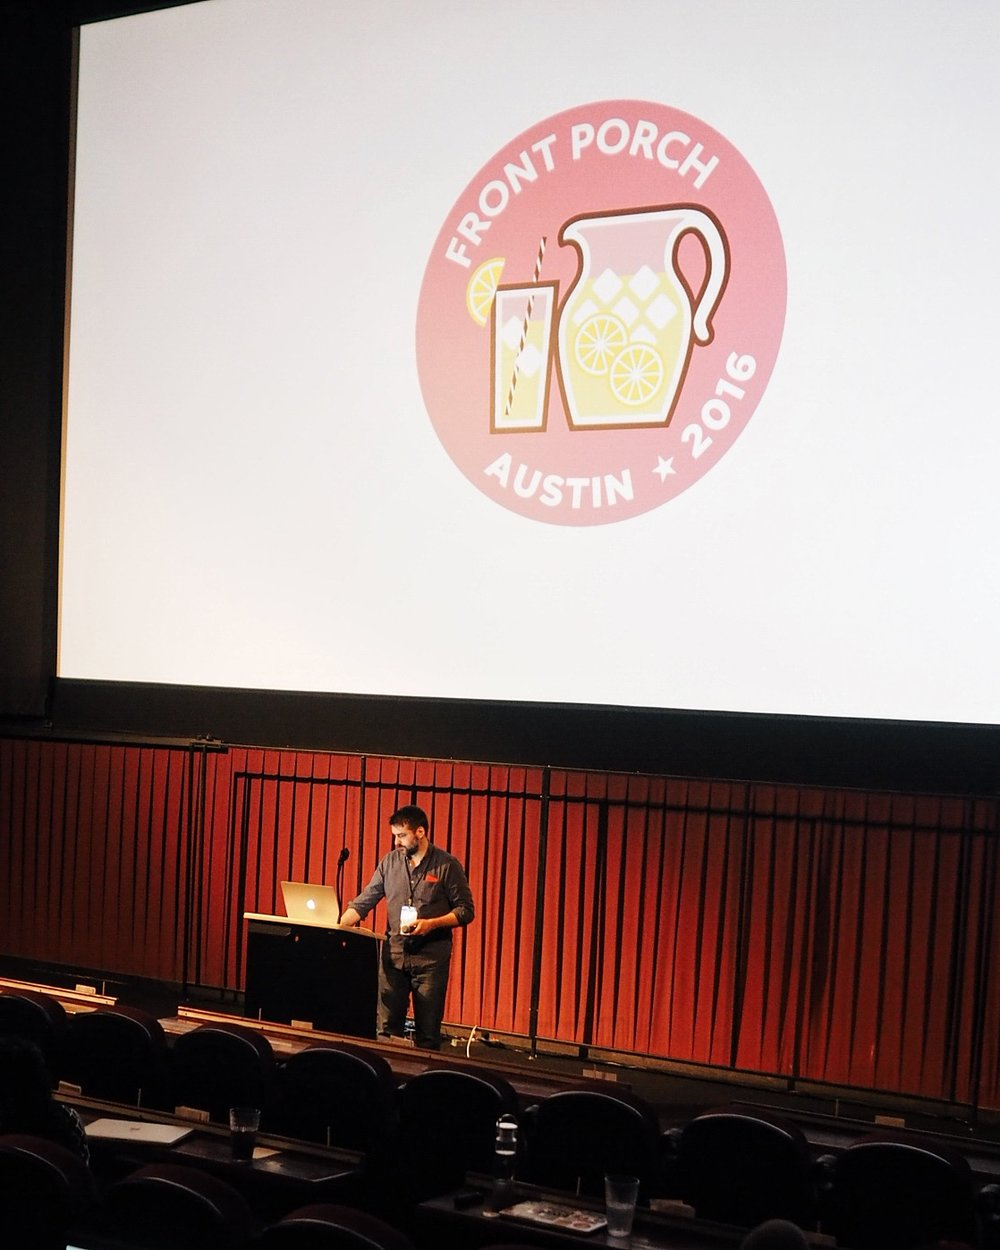 This year in Austin, projekt202 sponsored the Front Porch Conference for Web Developers, founded and organized by projekt202's Chris Williams. An annual event in Dallas, this marked the first year for Front Porch to branch out to an Austin venue.